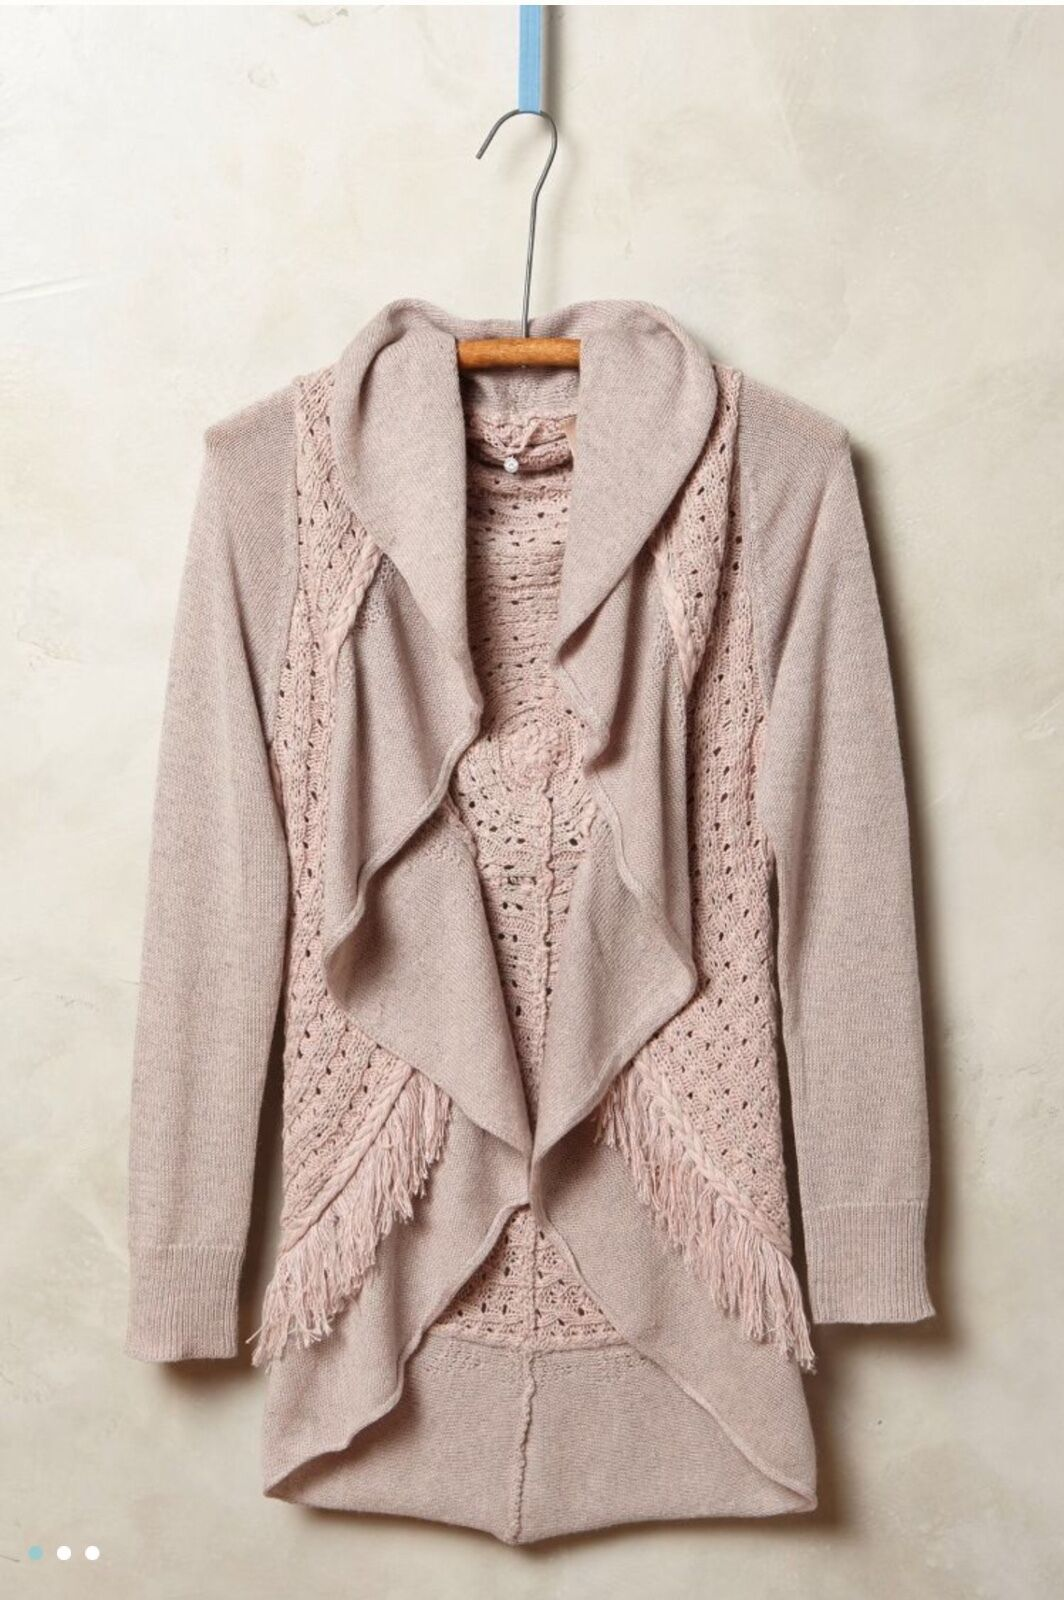 NWOT NWOT NWOT   128.00 Anthropologie Fringed Circle Cardigan by Knitted  Knotted Large 6855dd